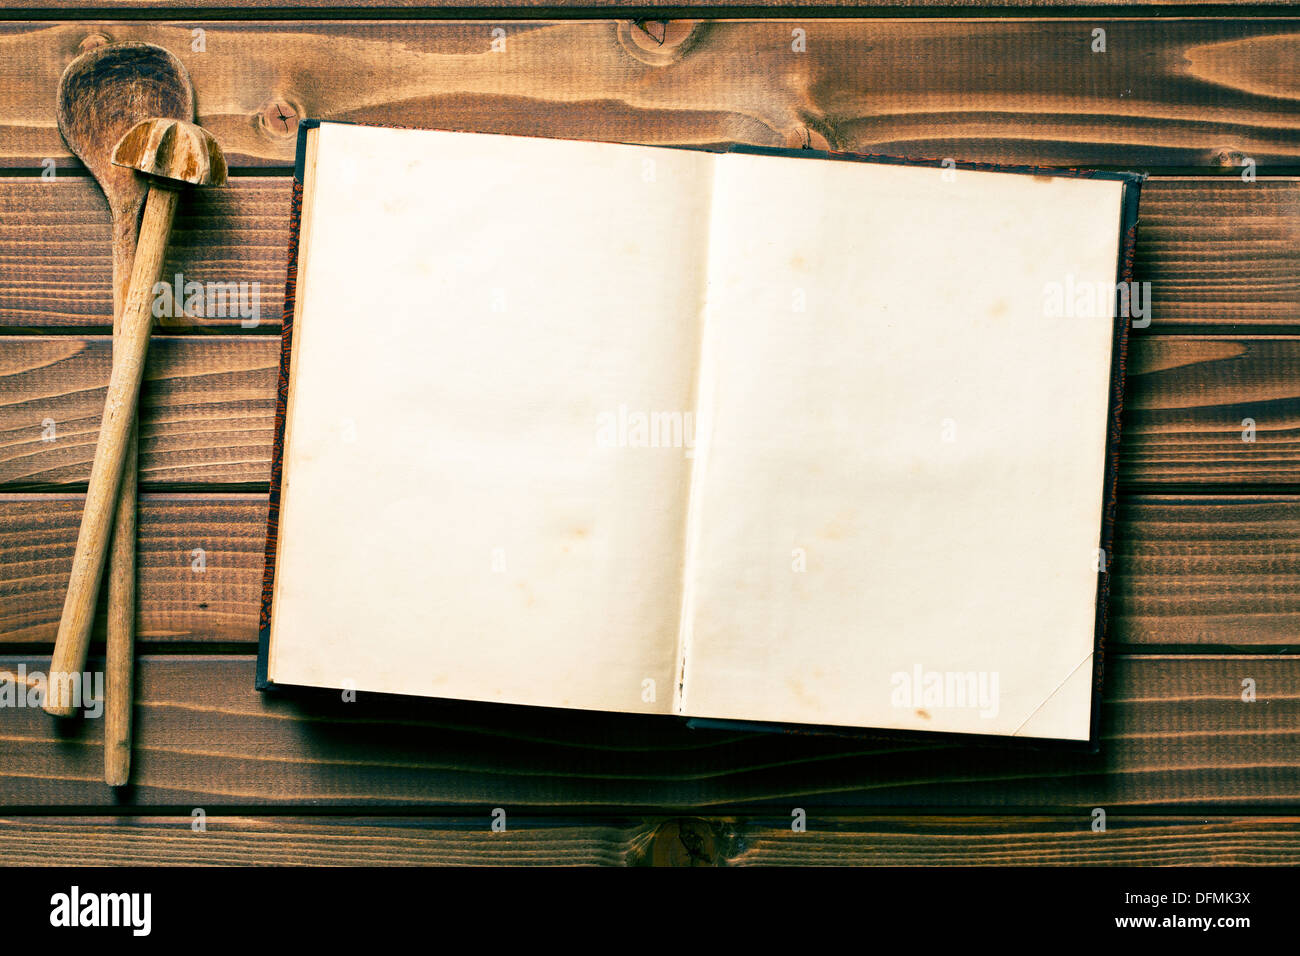 top view of recipe book with stirring spoons - Stock Image